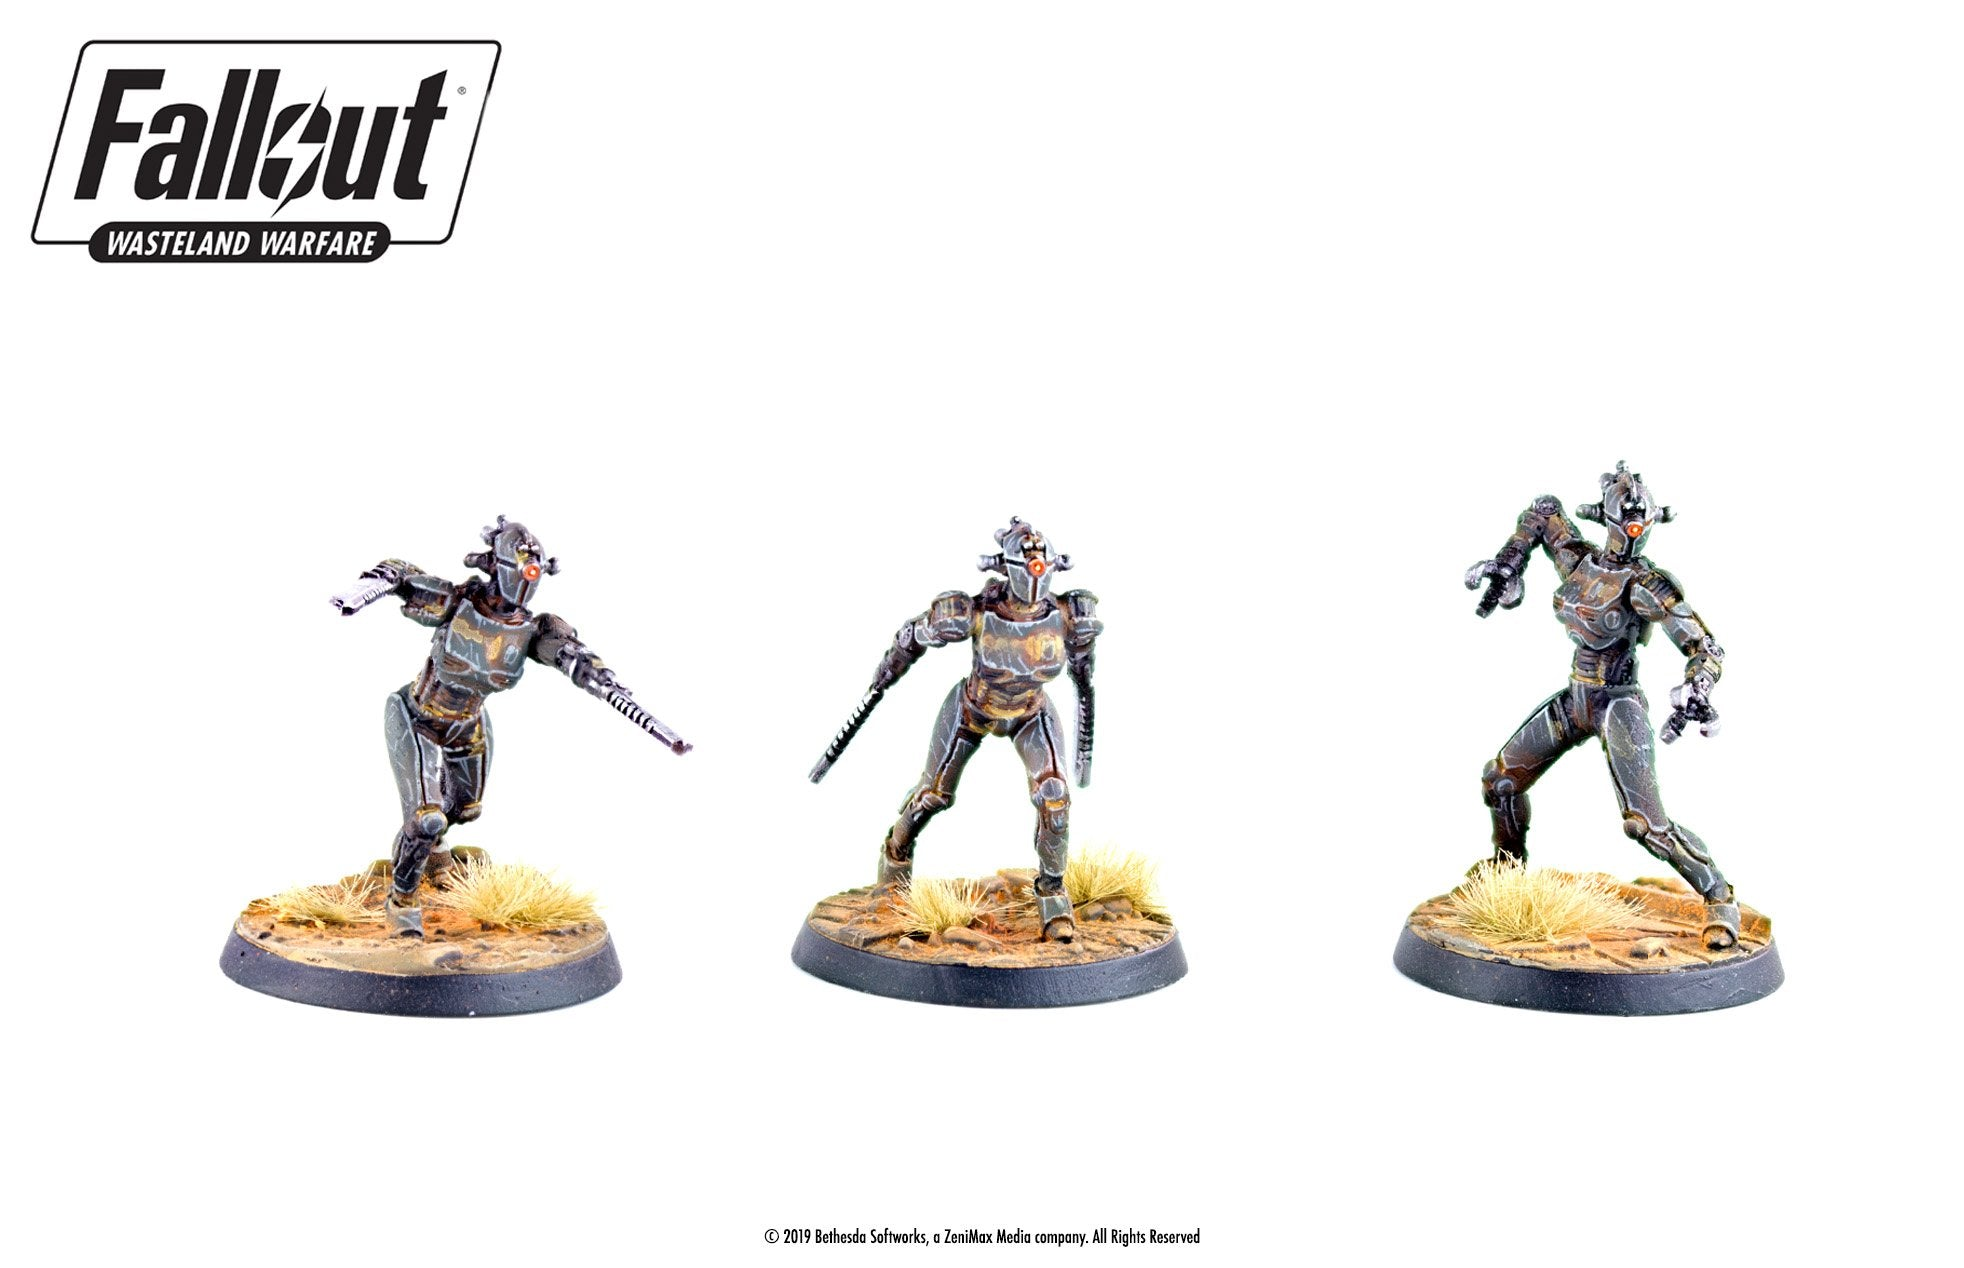 Fallout: Wasteland Warfare - Robots: Assaultrons